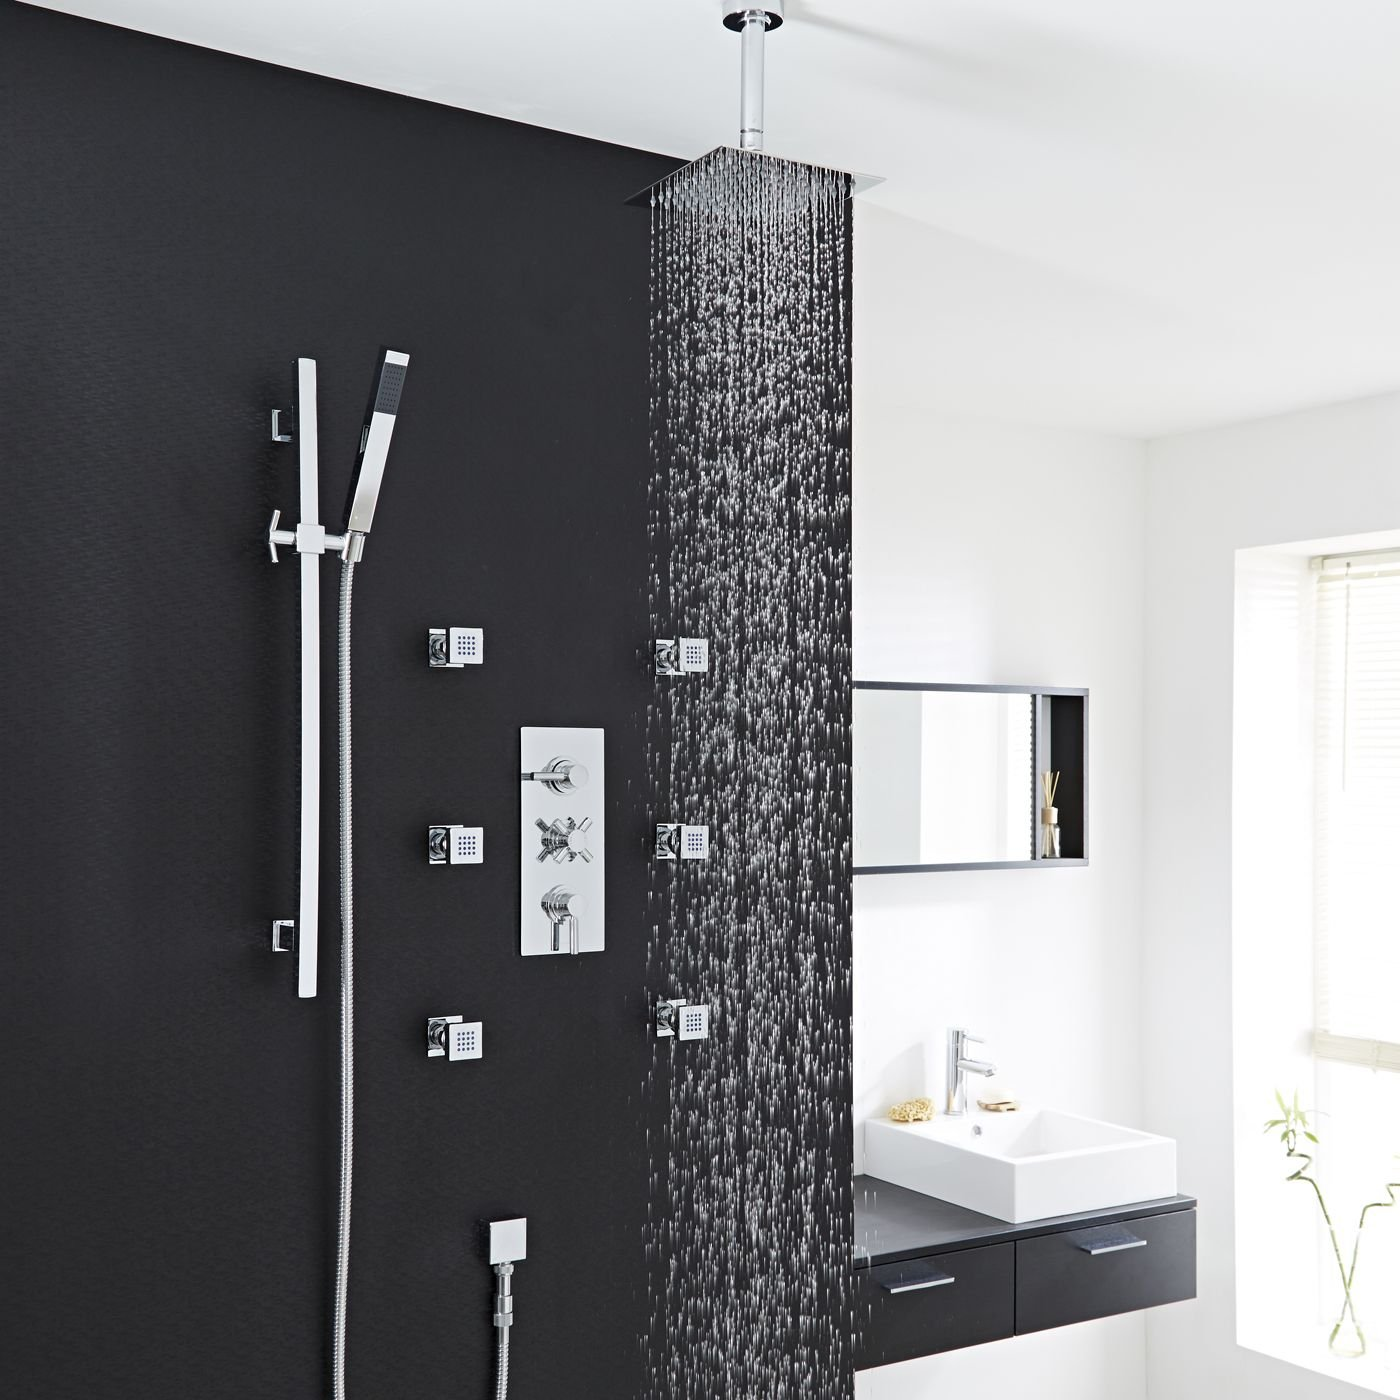 Tec Thermostatic Shower System Hudson Reed In Chrome Plated Finish With Triple Brass Valve, 8'' Rain Head, Square Rail Kit, Hand spray & 6 Massaging Spa Jets